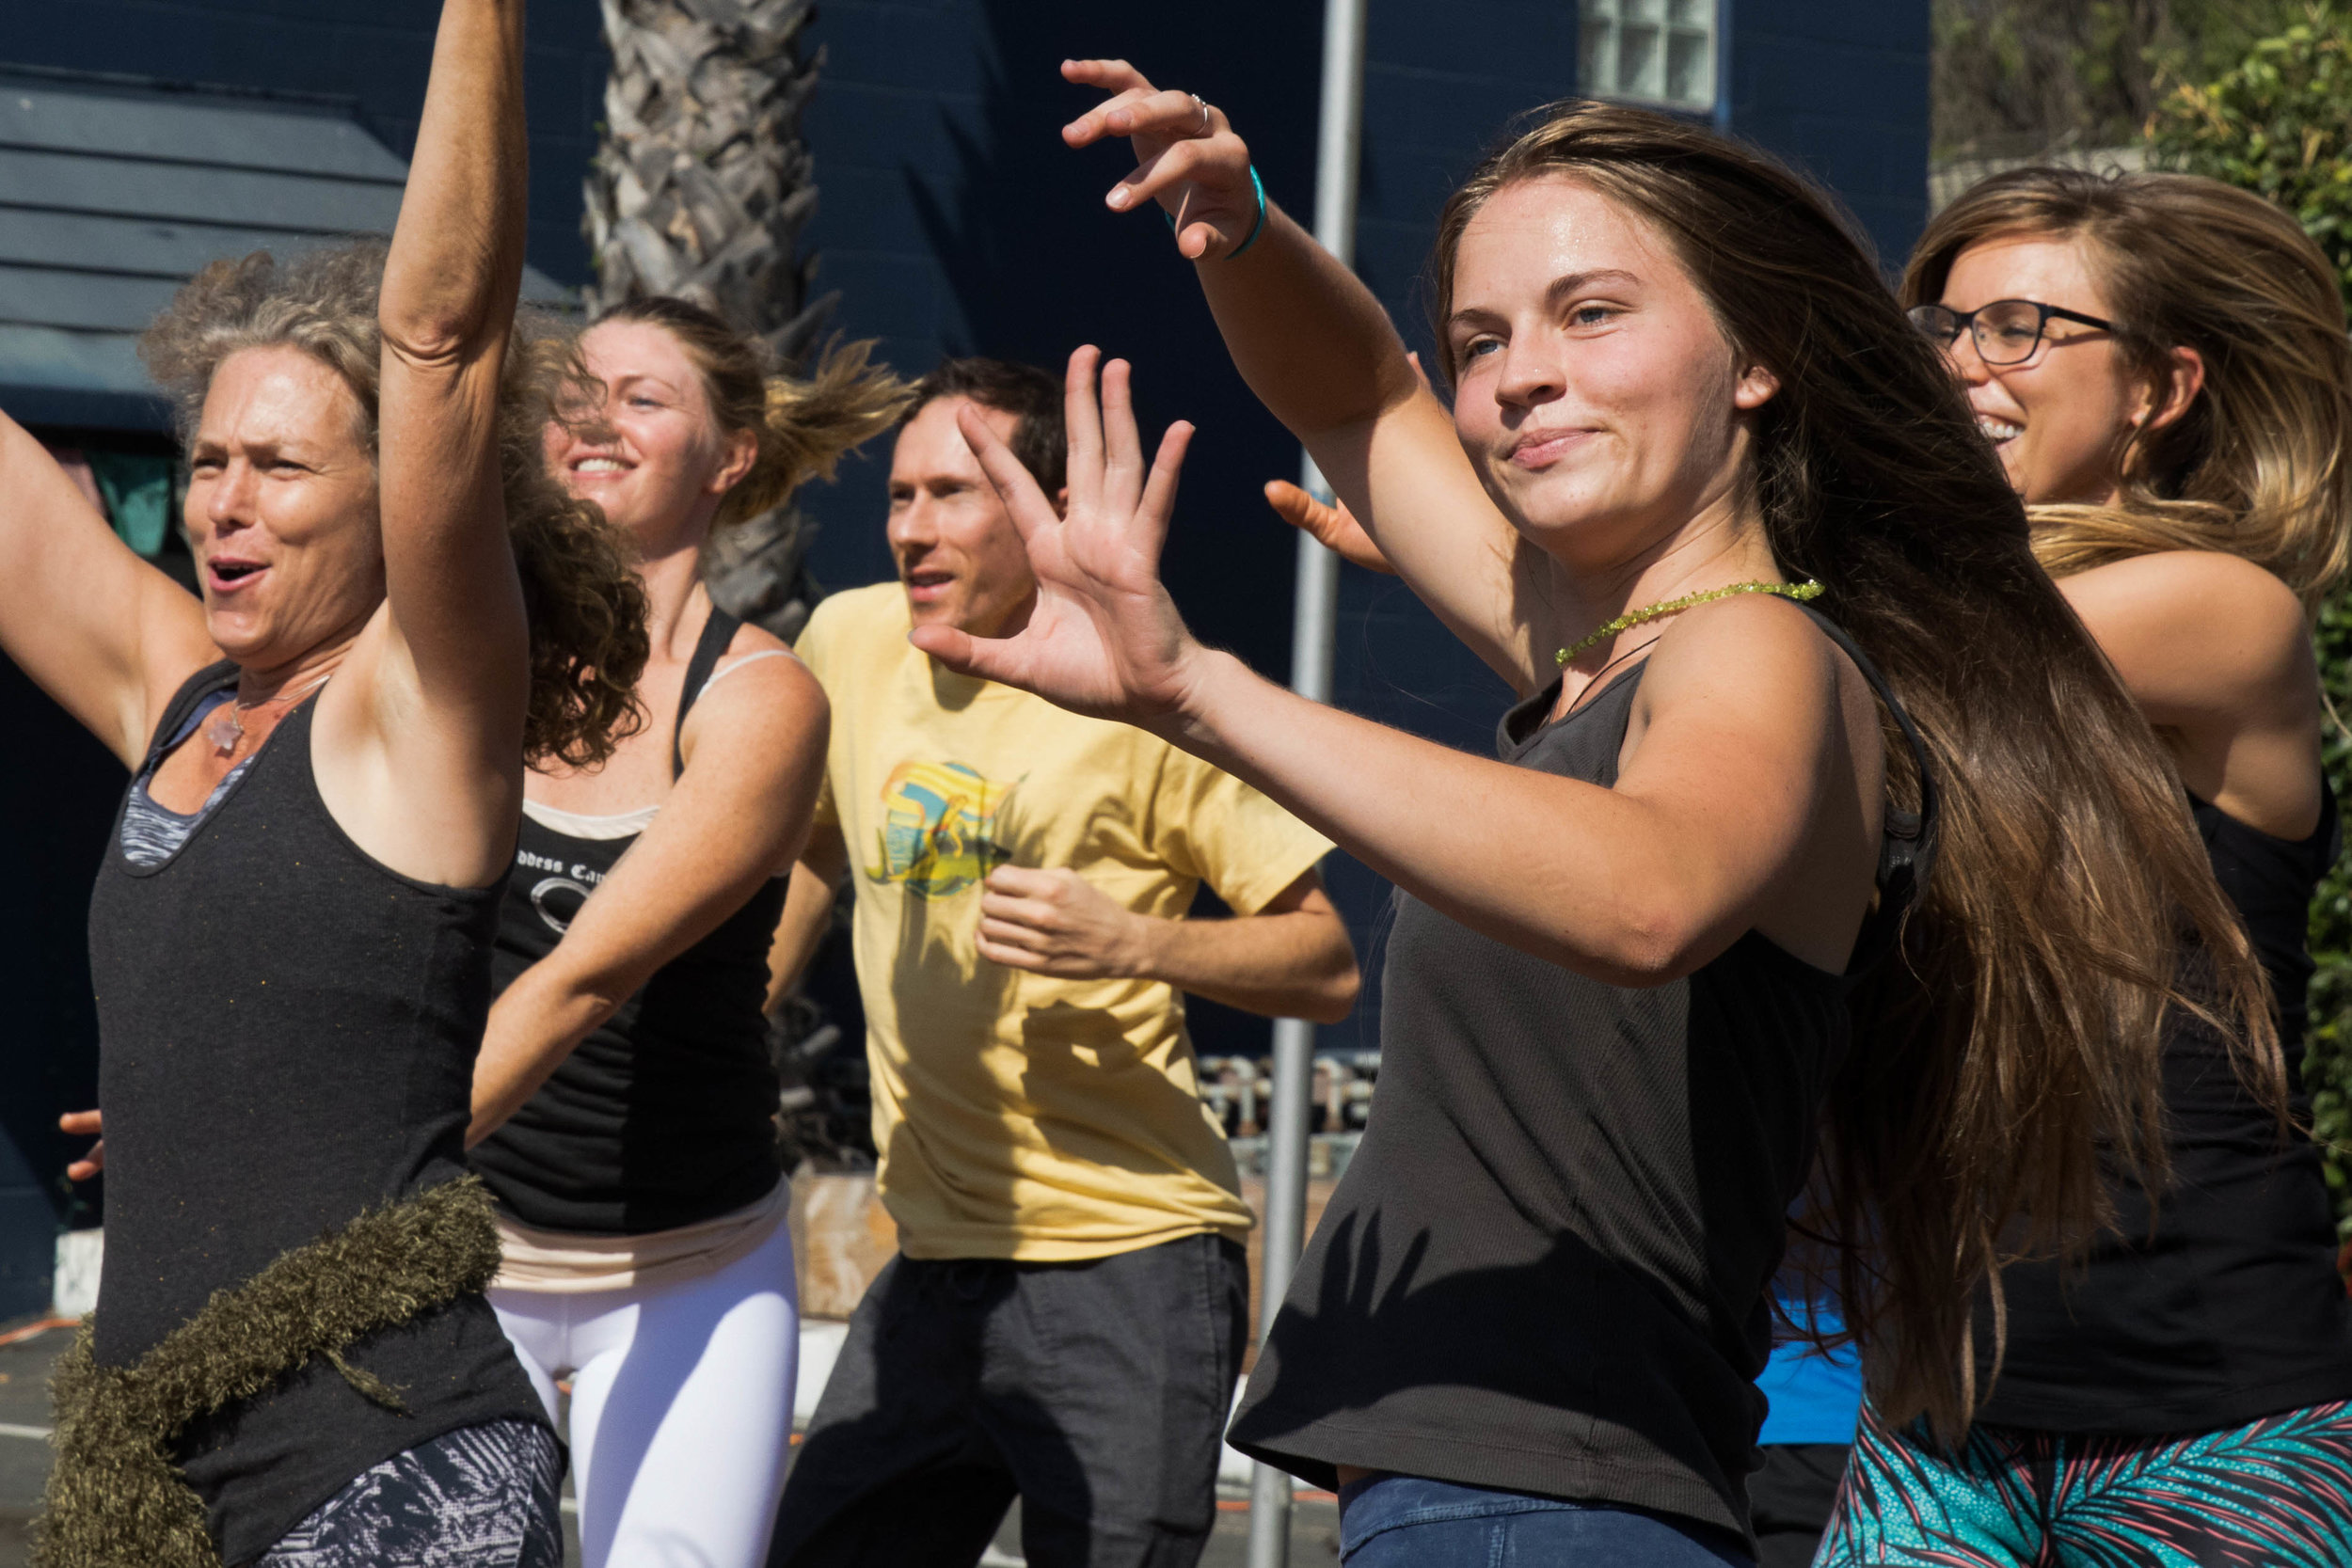 Members of Continuum Studios Dance Alive open up the Pico Block Party with a group dance on October 14, 2017. (Photo By: Zane Meyer-Thornton)